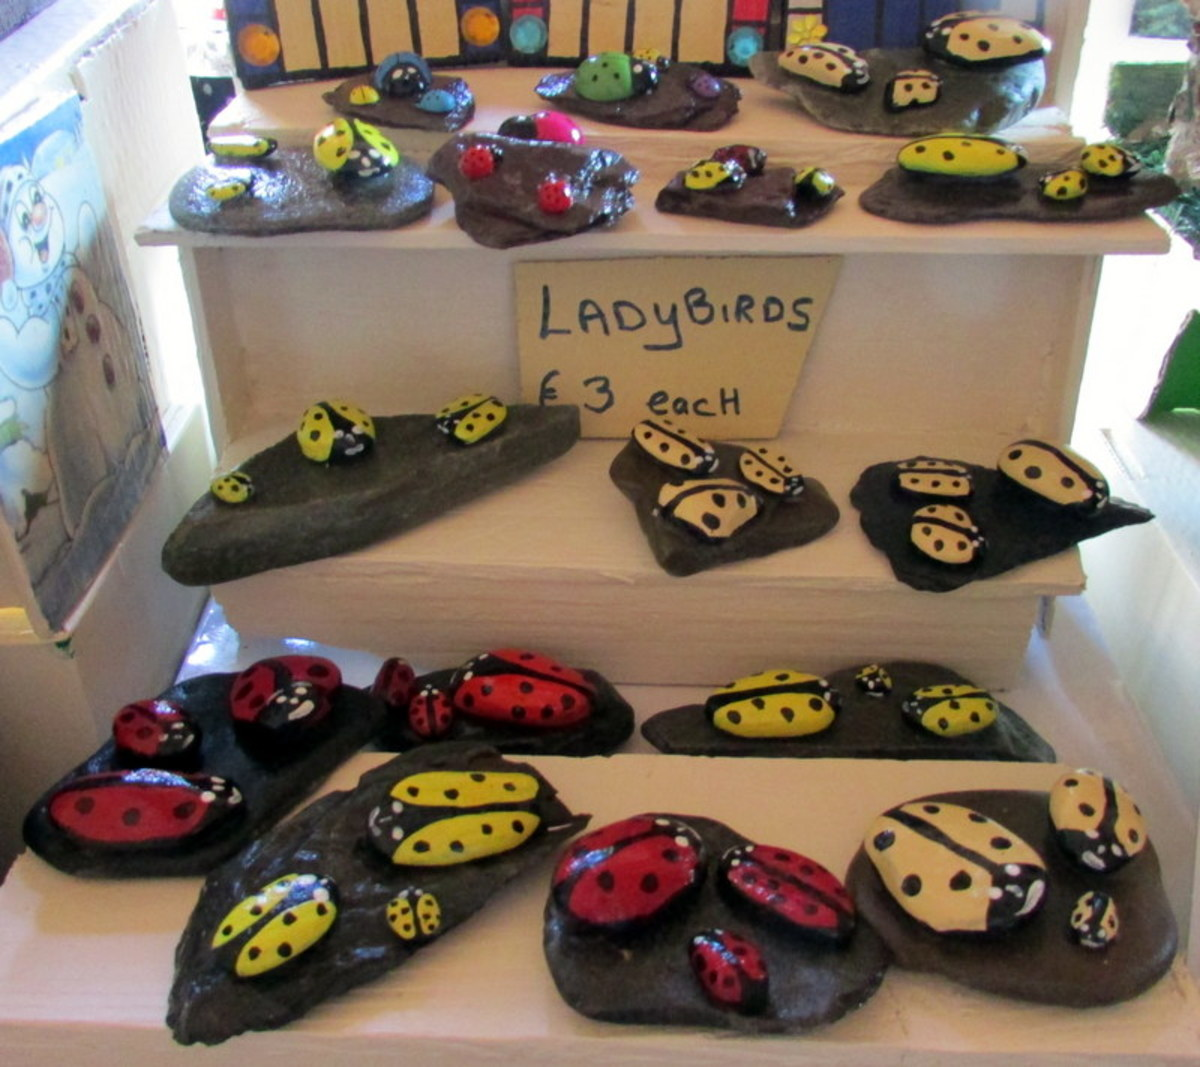 Ladybirds On Display